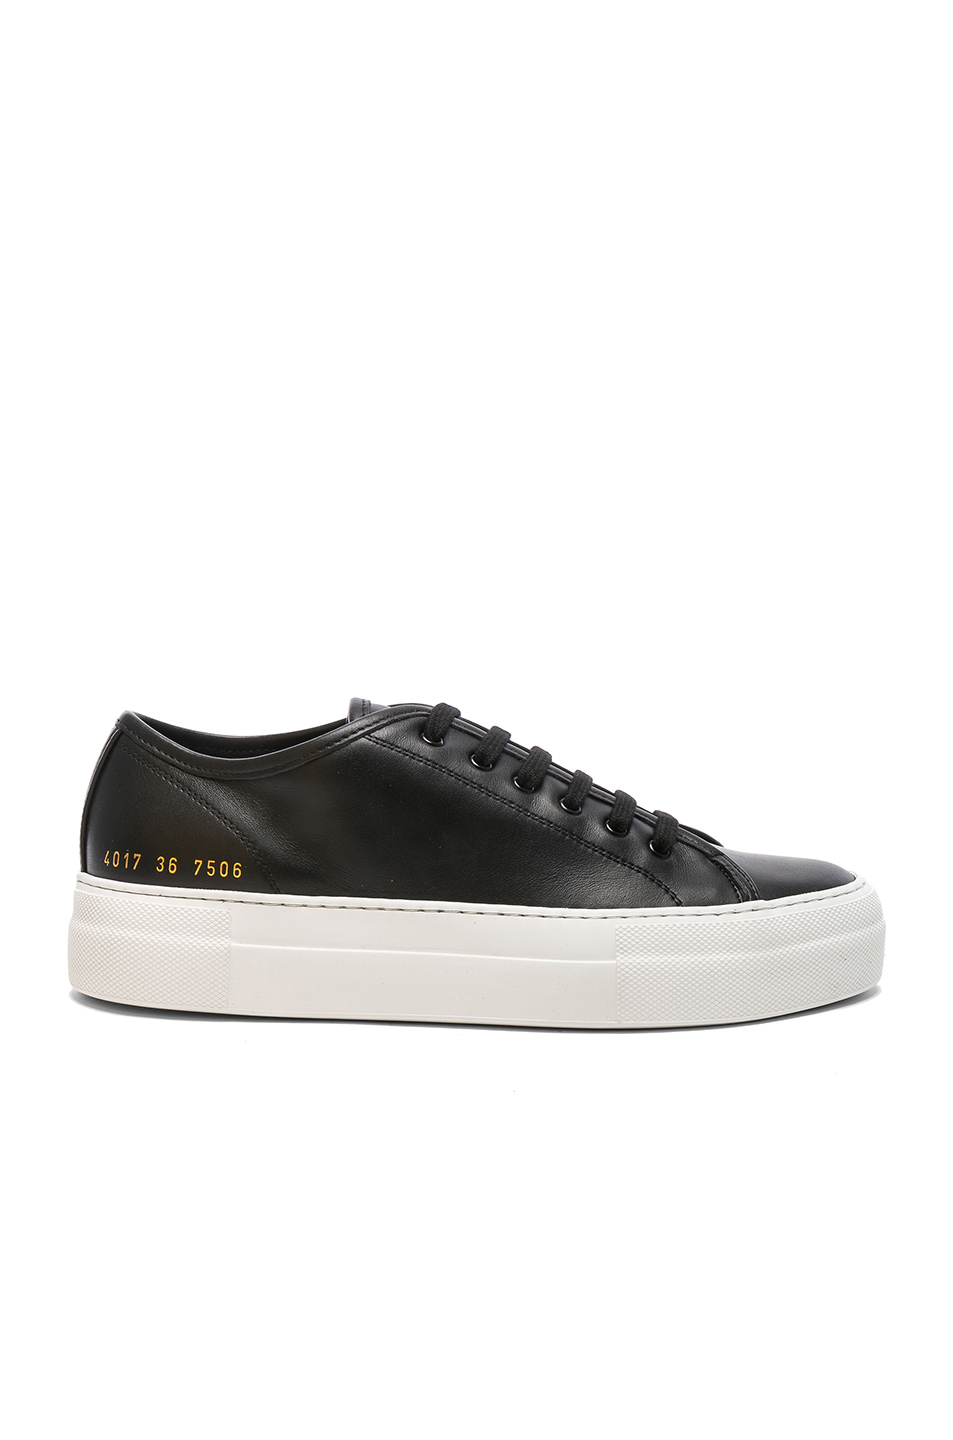 3a91deaab767 Buy Original Common Projects Leather Low Tournament Super Sneakers ...